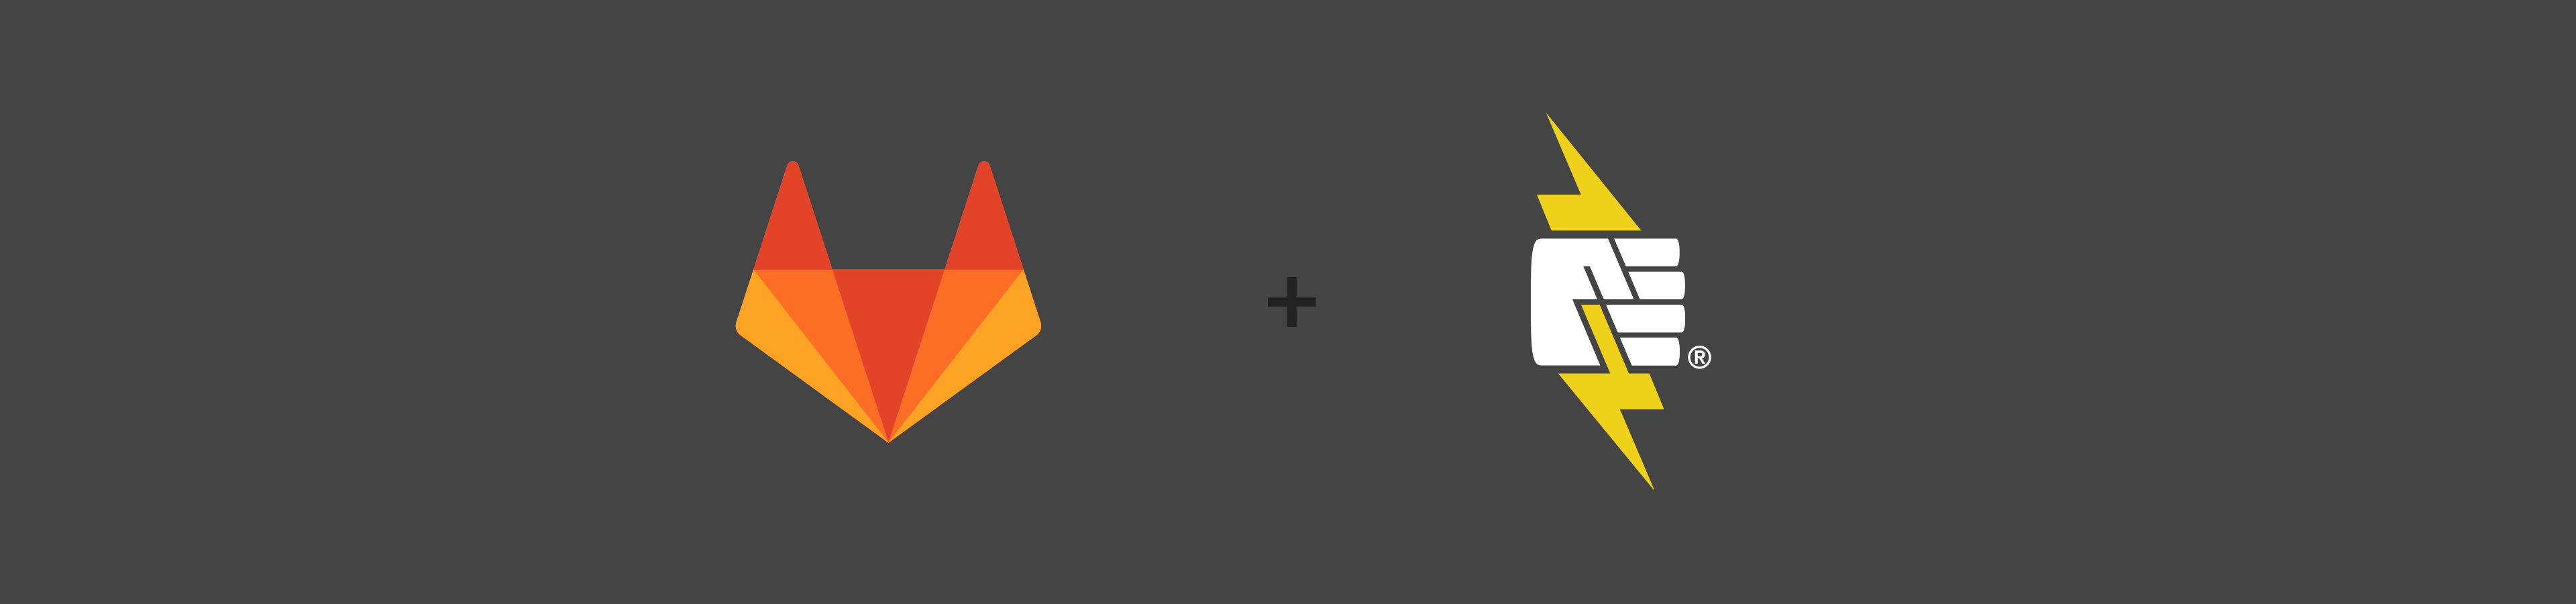 How to connect GitLab and Pantheon to streamline Drupal and